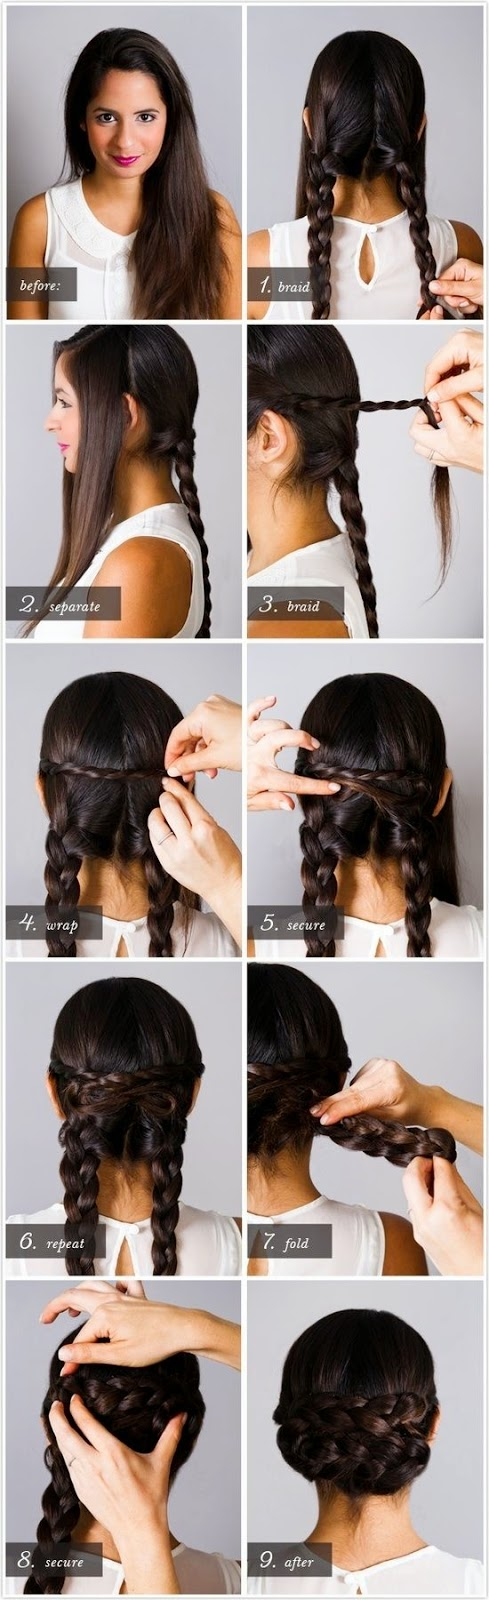 Stupendous Hairstyles And Women Attire 5 Simple And Cute Hairstyle Tutorials Short Hairstyles Gunalazisus